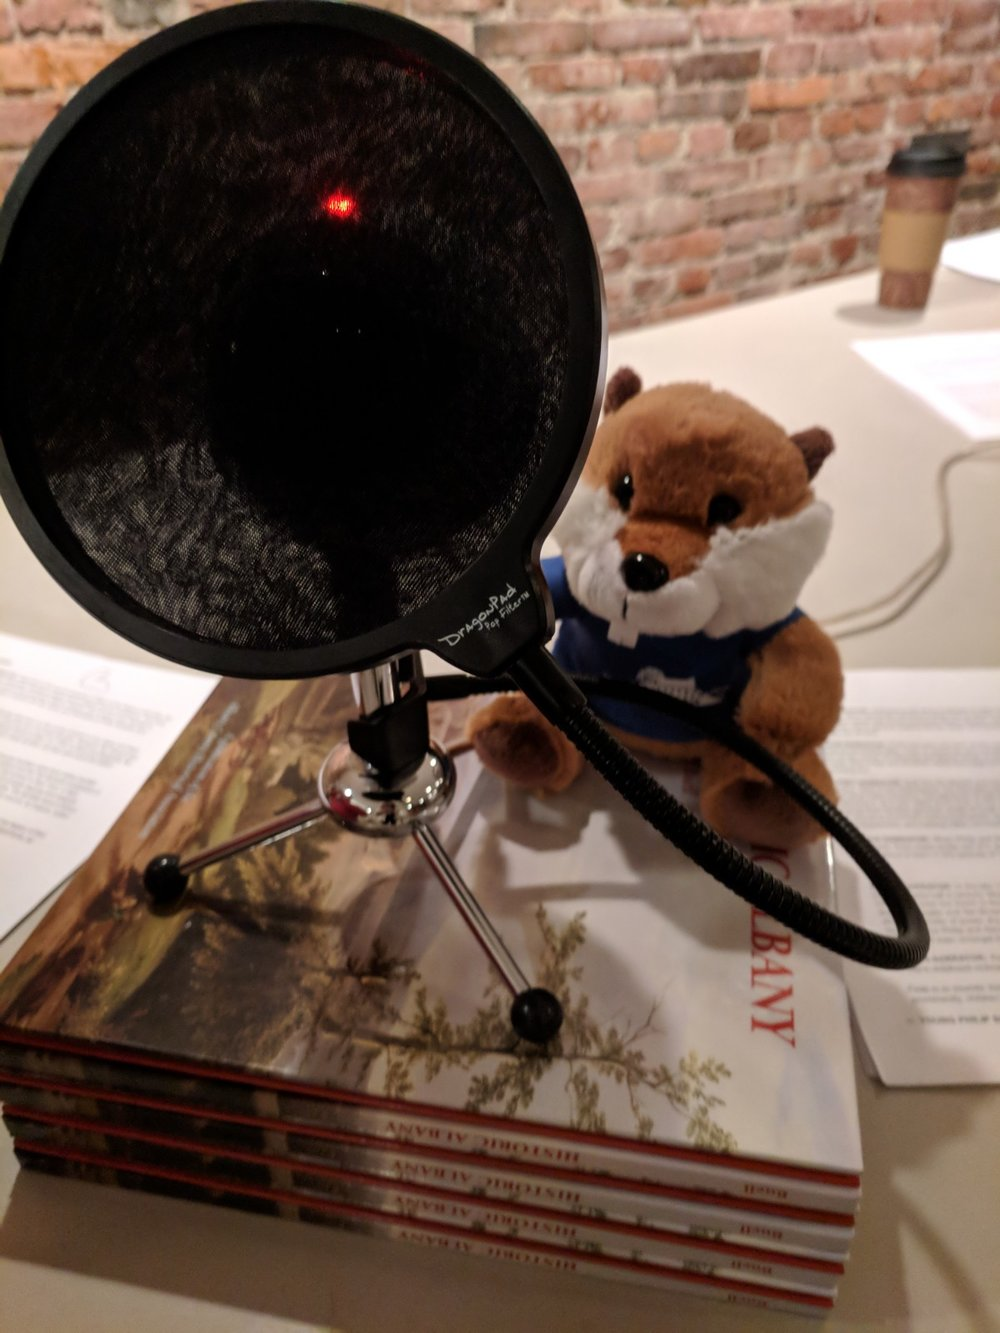 Brom the Beaver, the official Ten Broeck Mansion mascot, guards the mic between takes